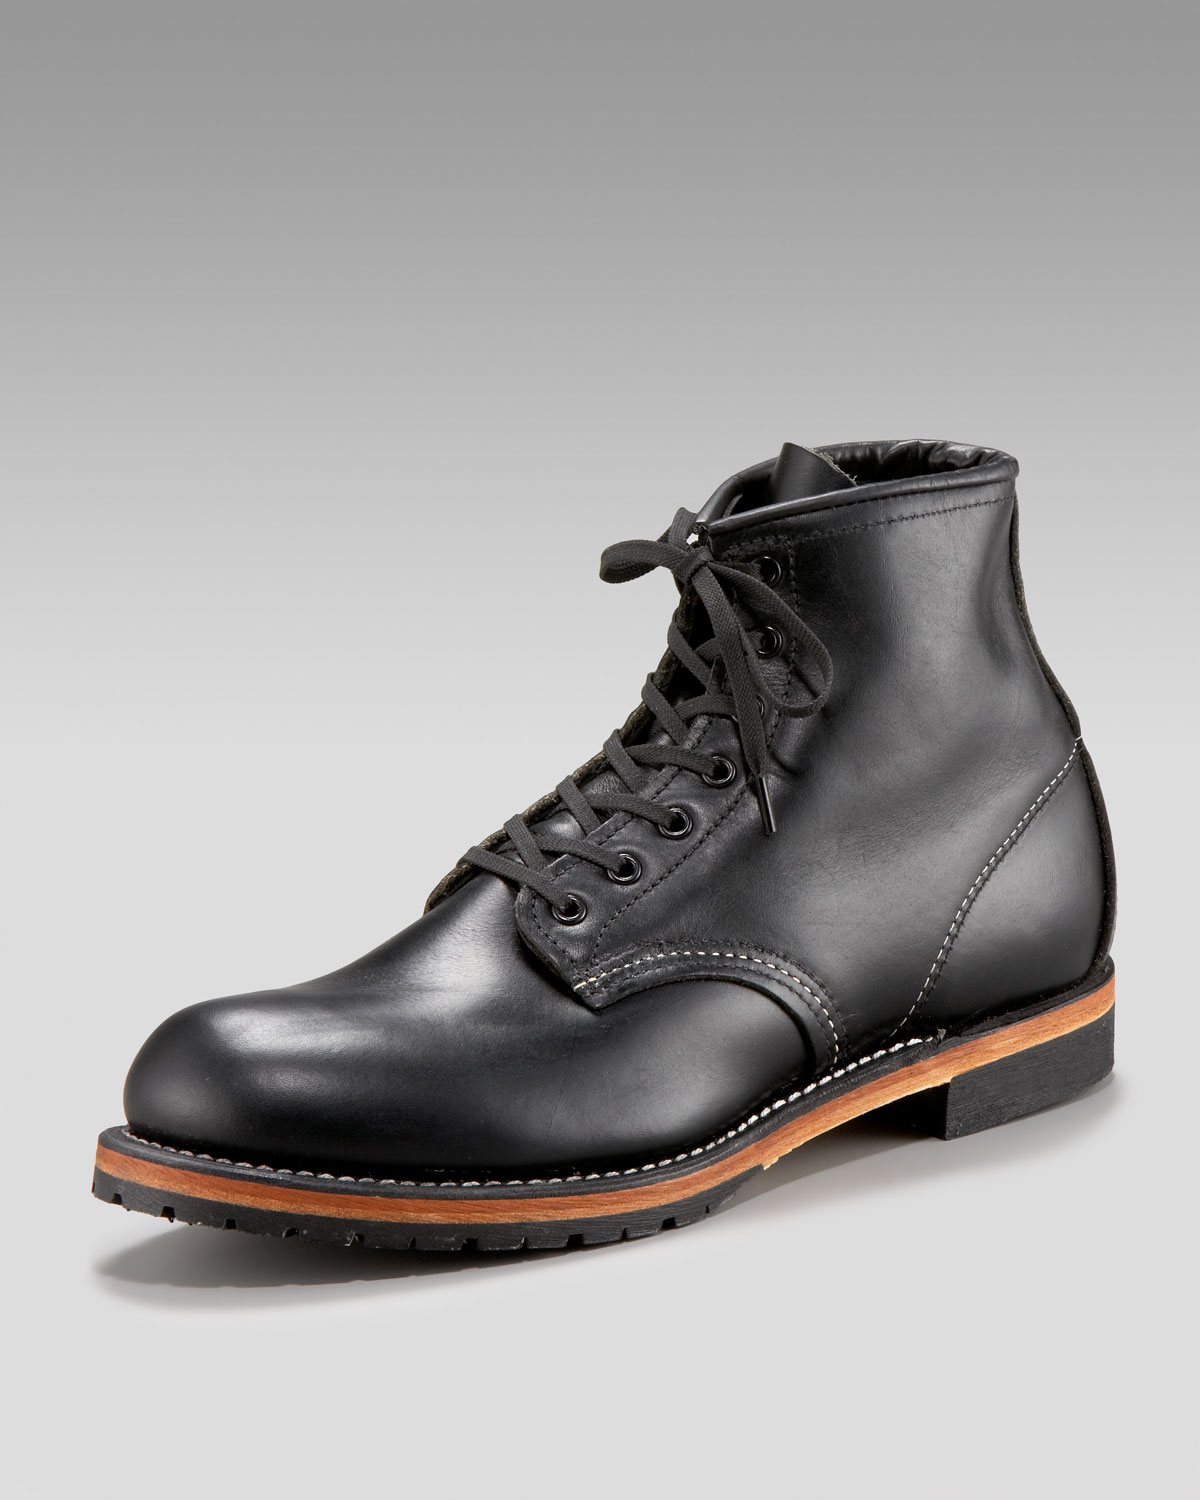 Red Wing Boots Black KjL4rbzD